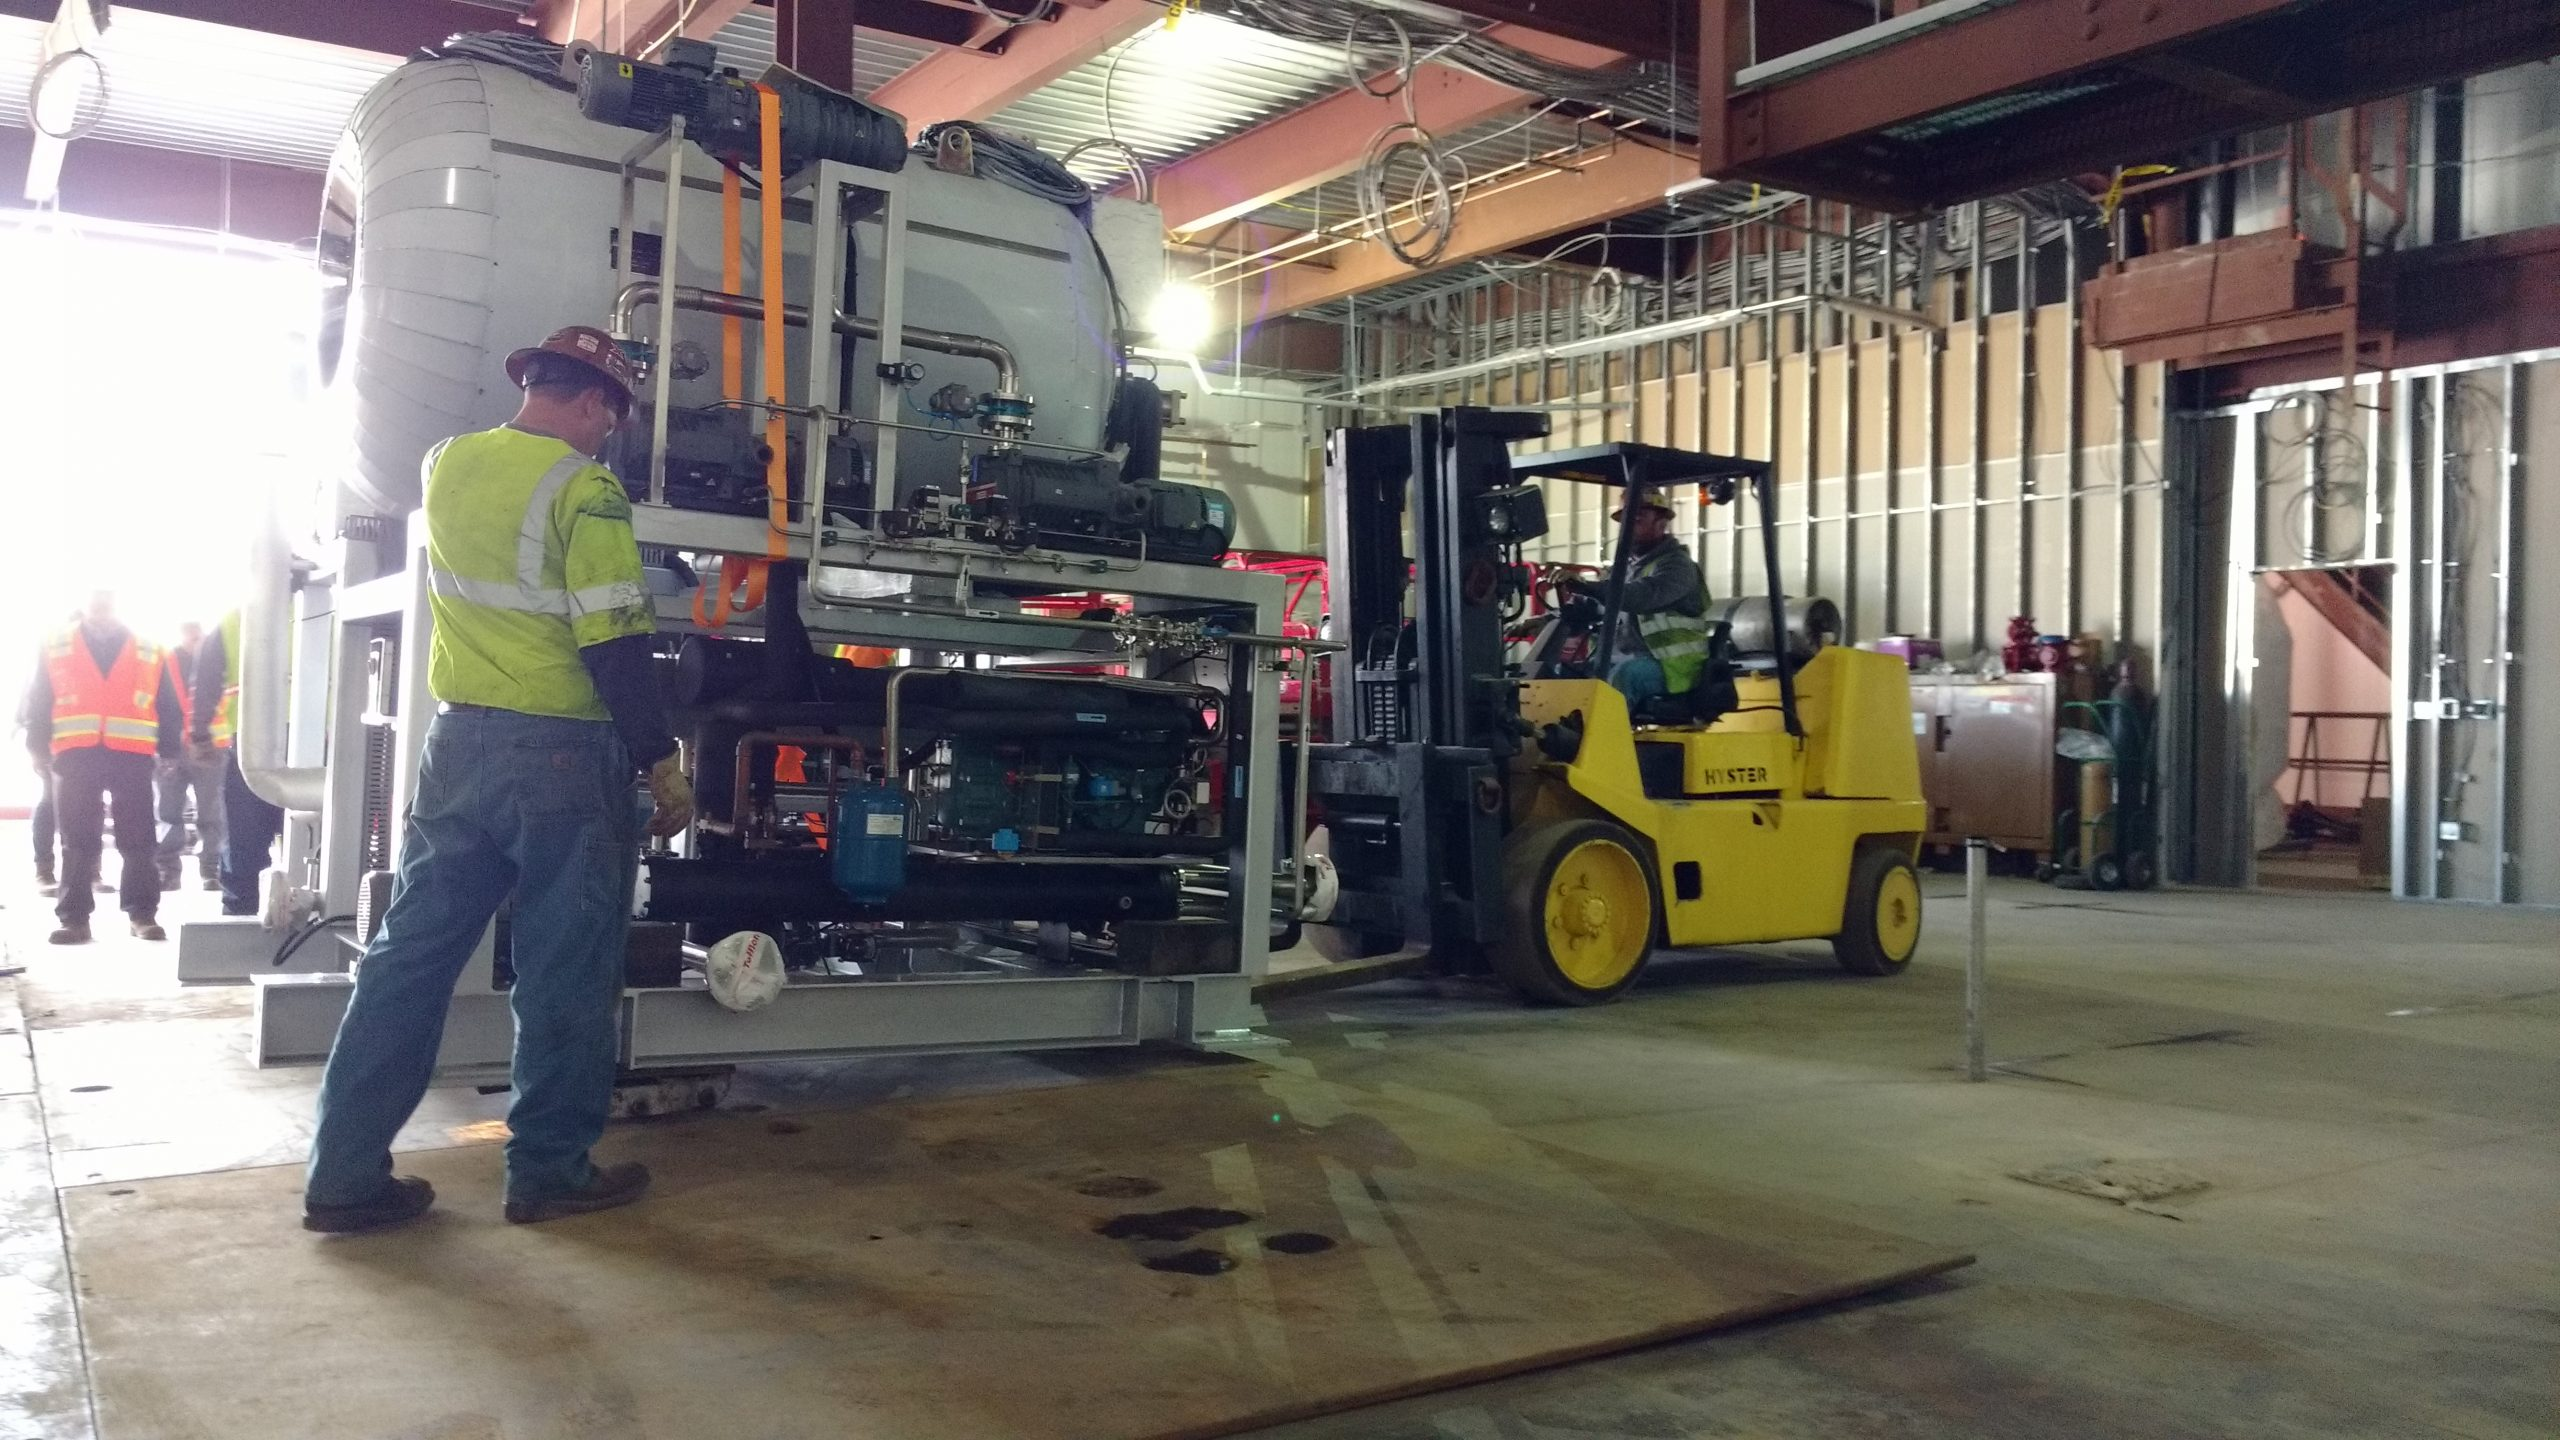 Heritage Performs Rigging, Millwright & Trucking Services for Global Pharmaceutical Company